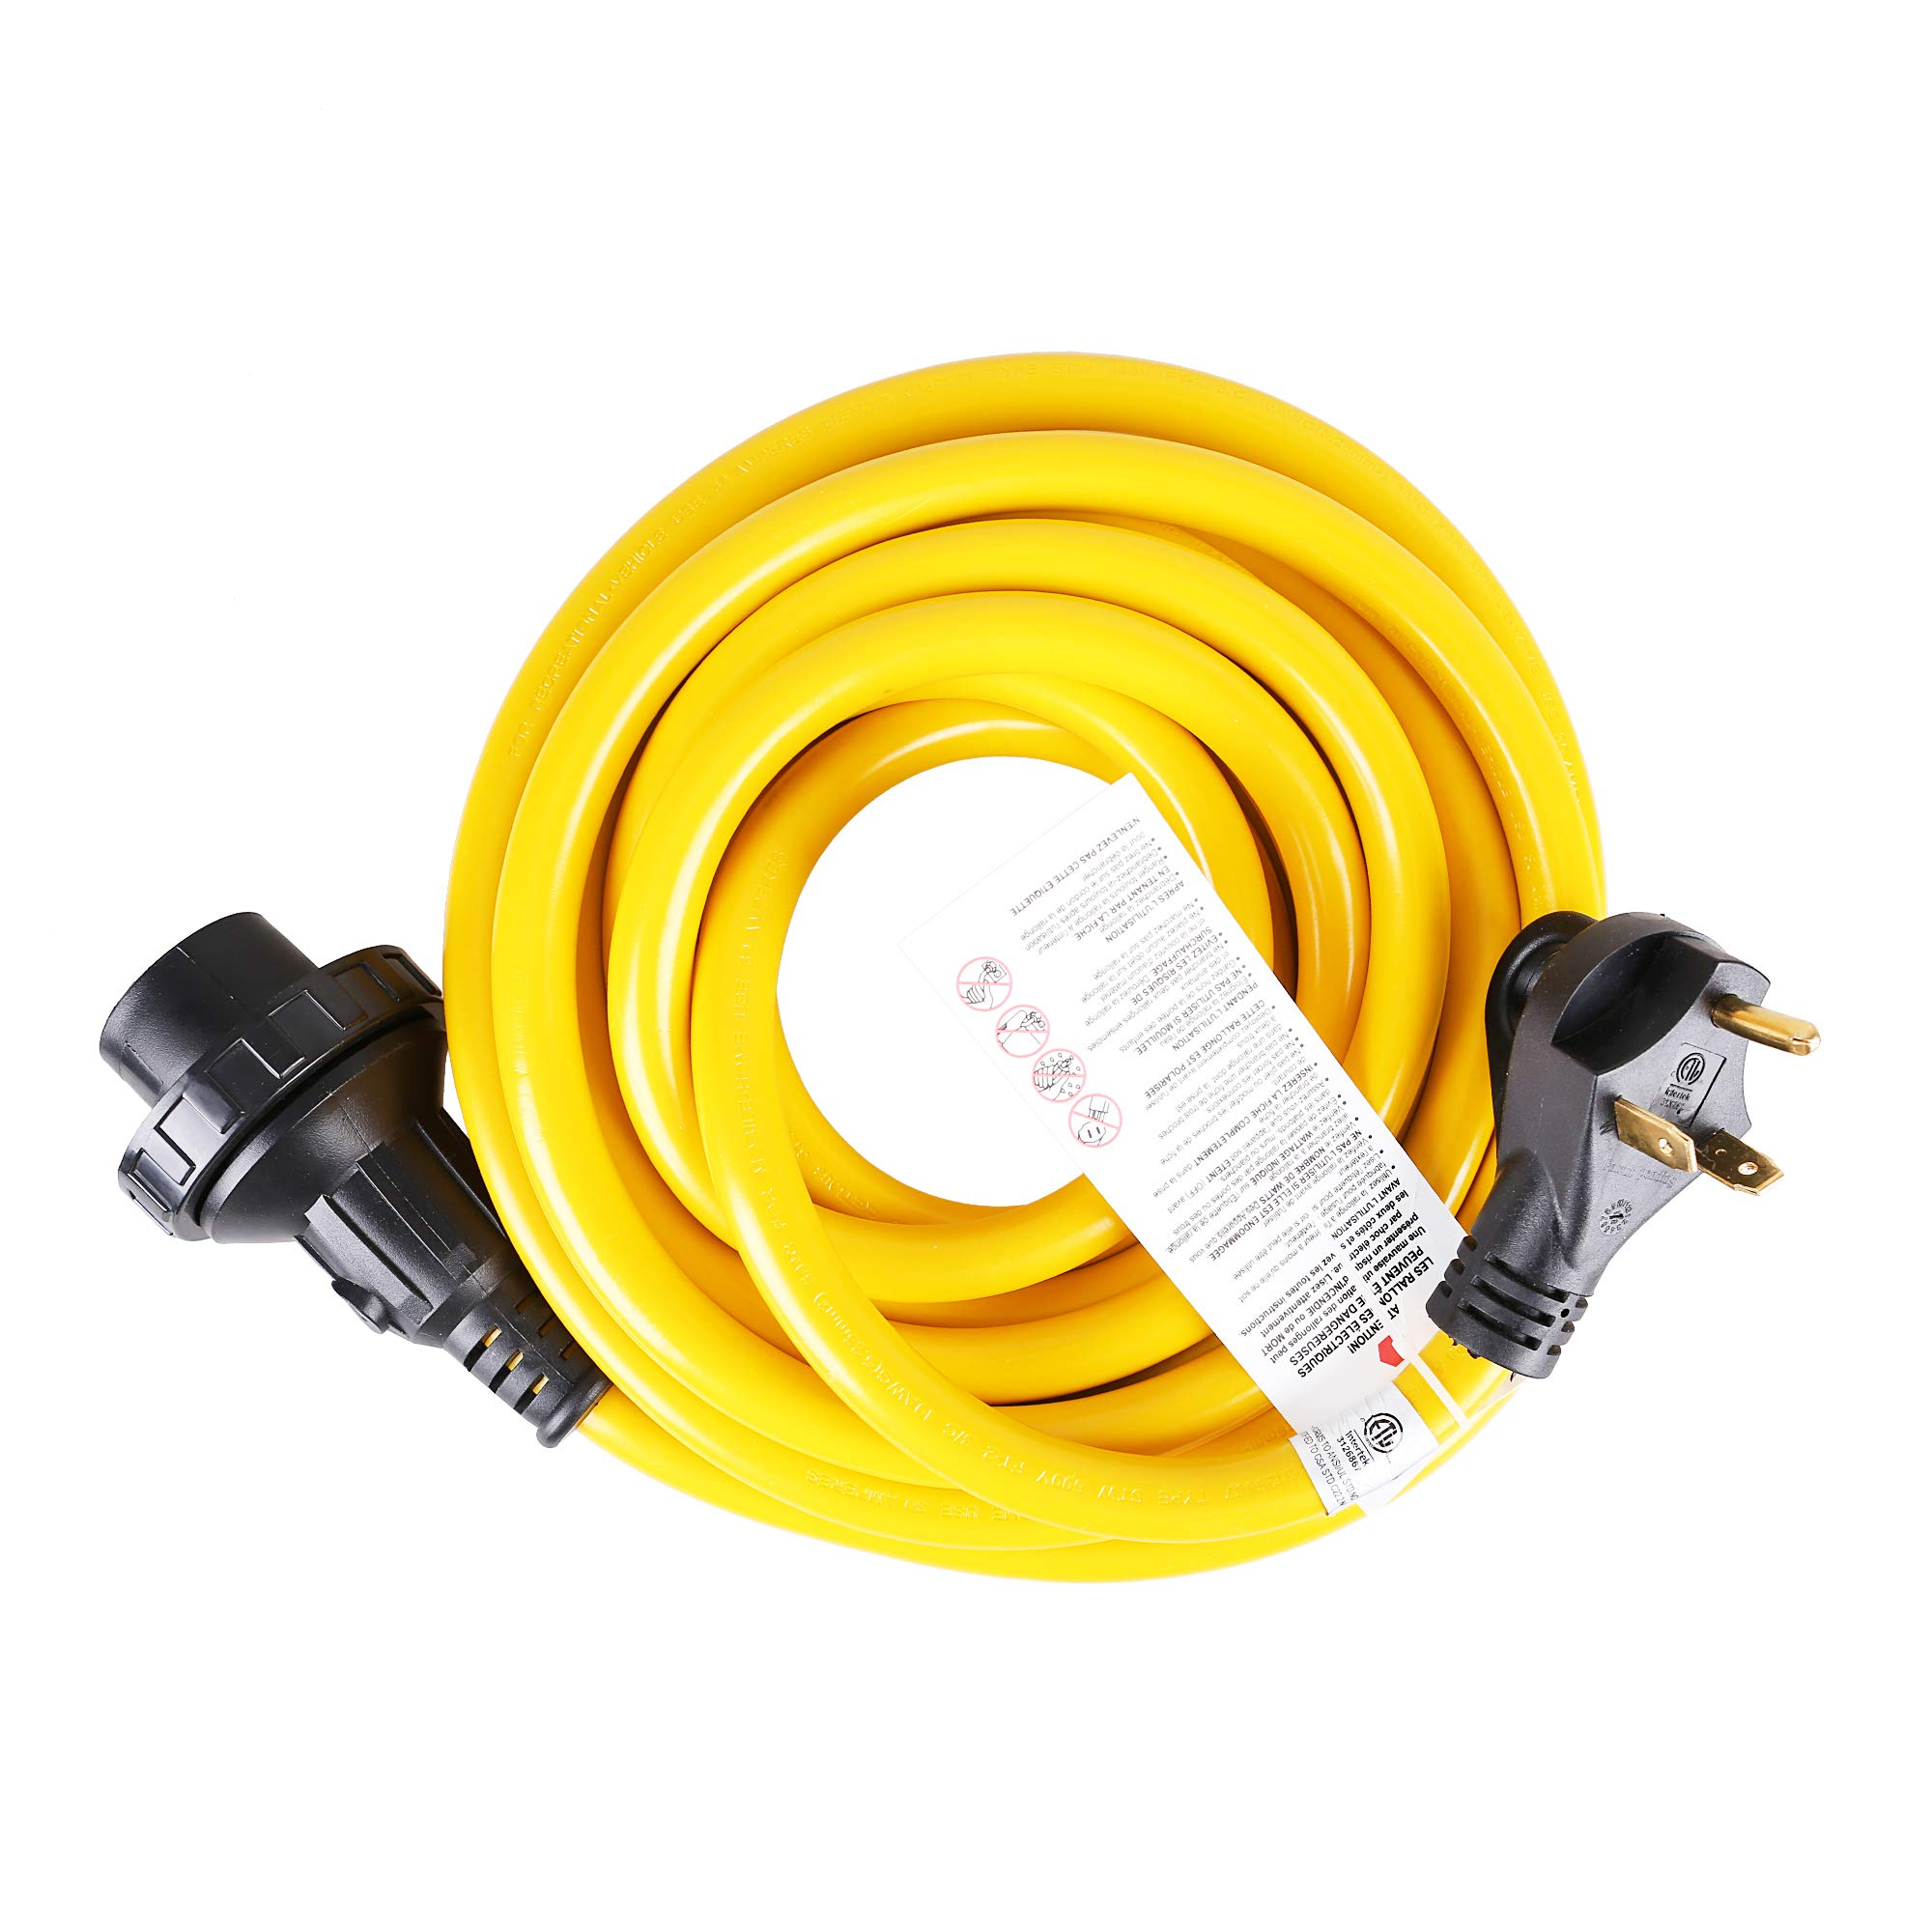 TREKPOWER 10AWG 25' Marine Power Cord Extension Cord with 30 AMP Power Grip Male Standard Plug and 30 AMP Female Locking Connector for Boat to Shore/RV - (Black/Yellow)